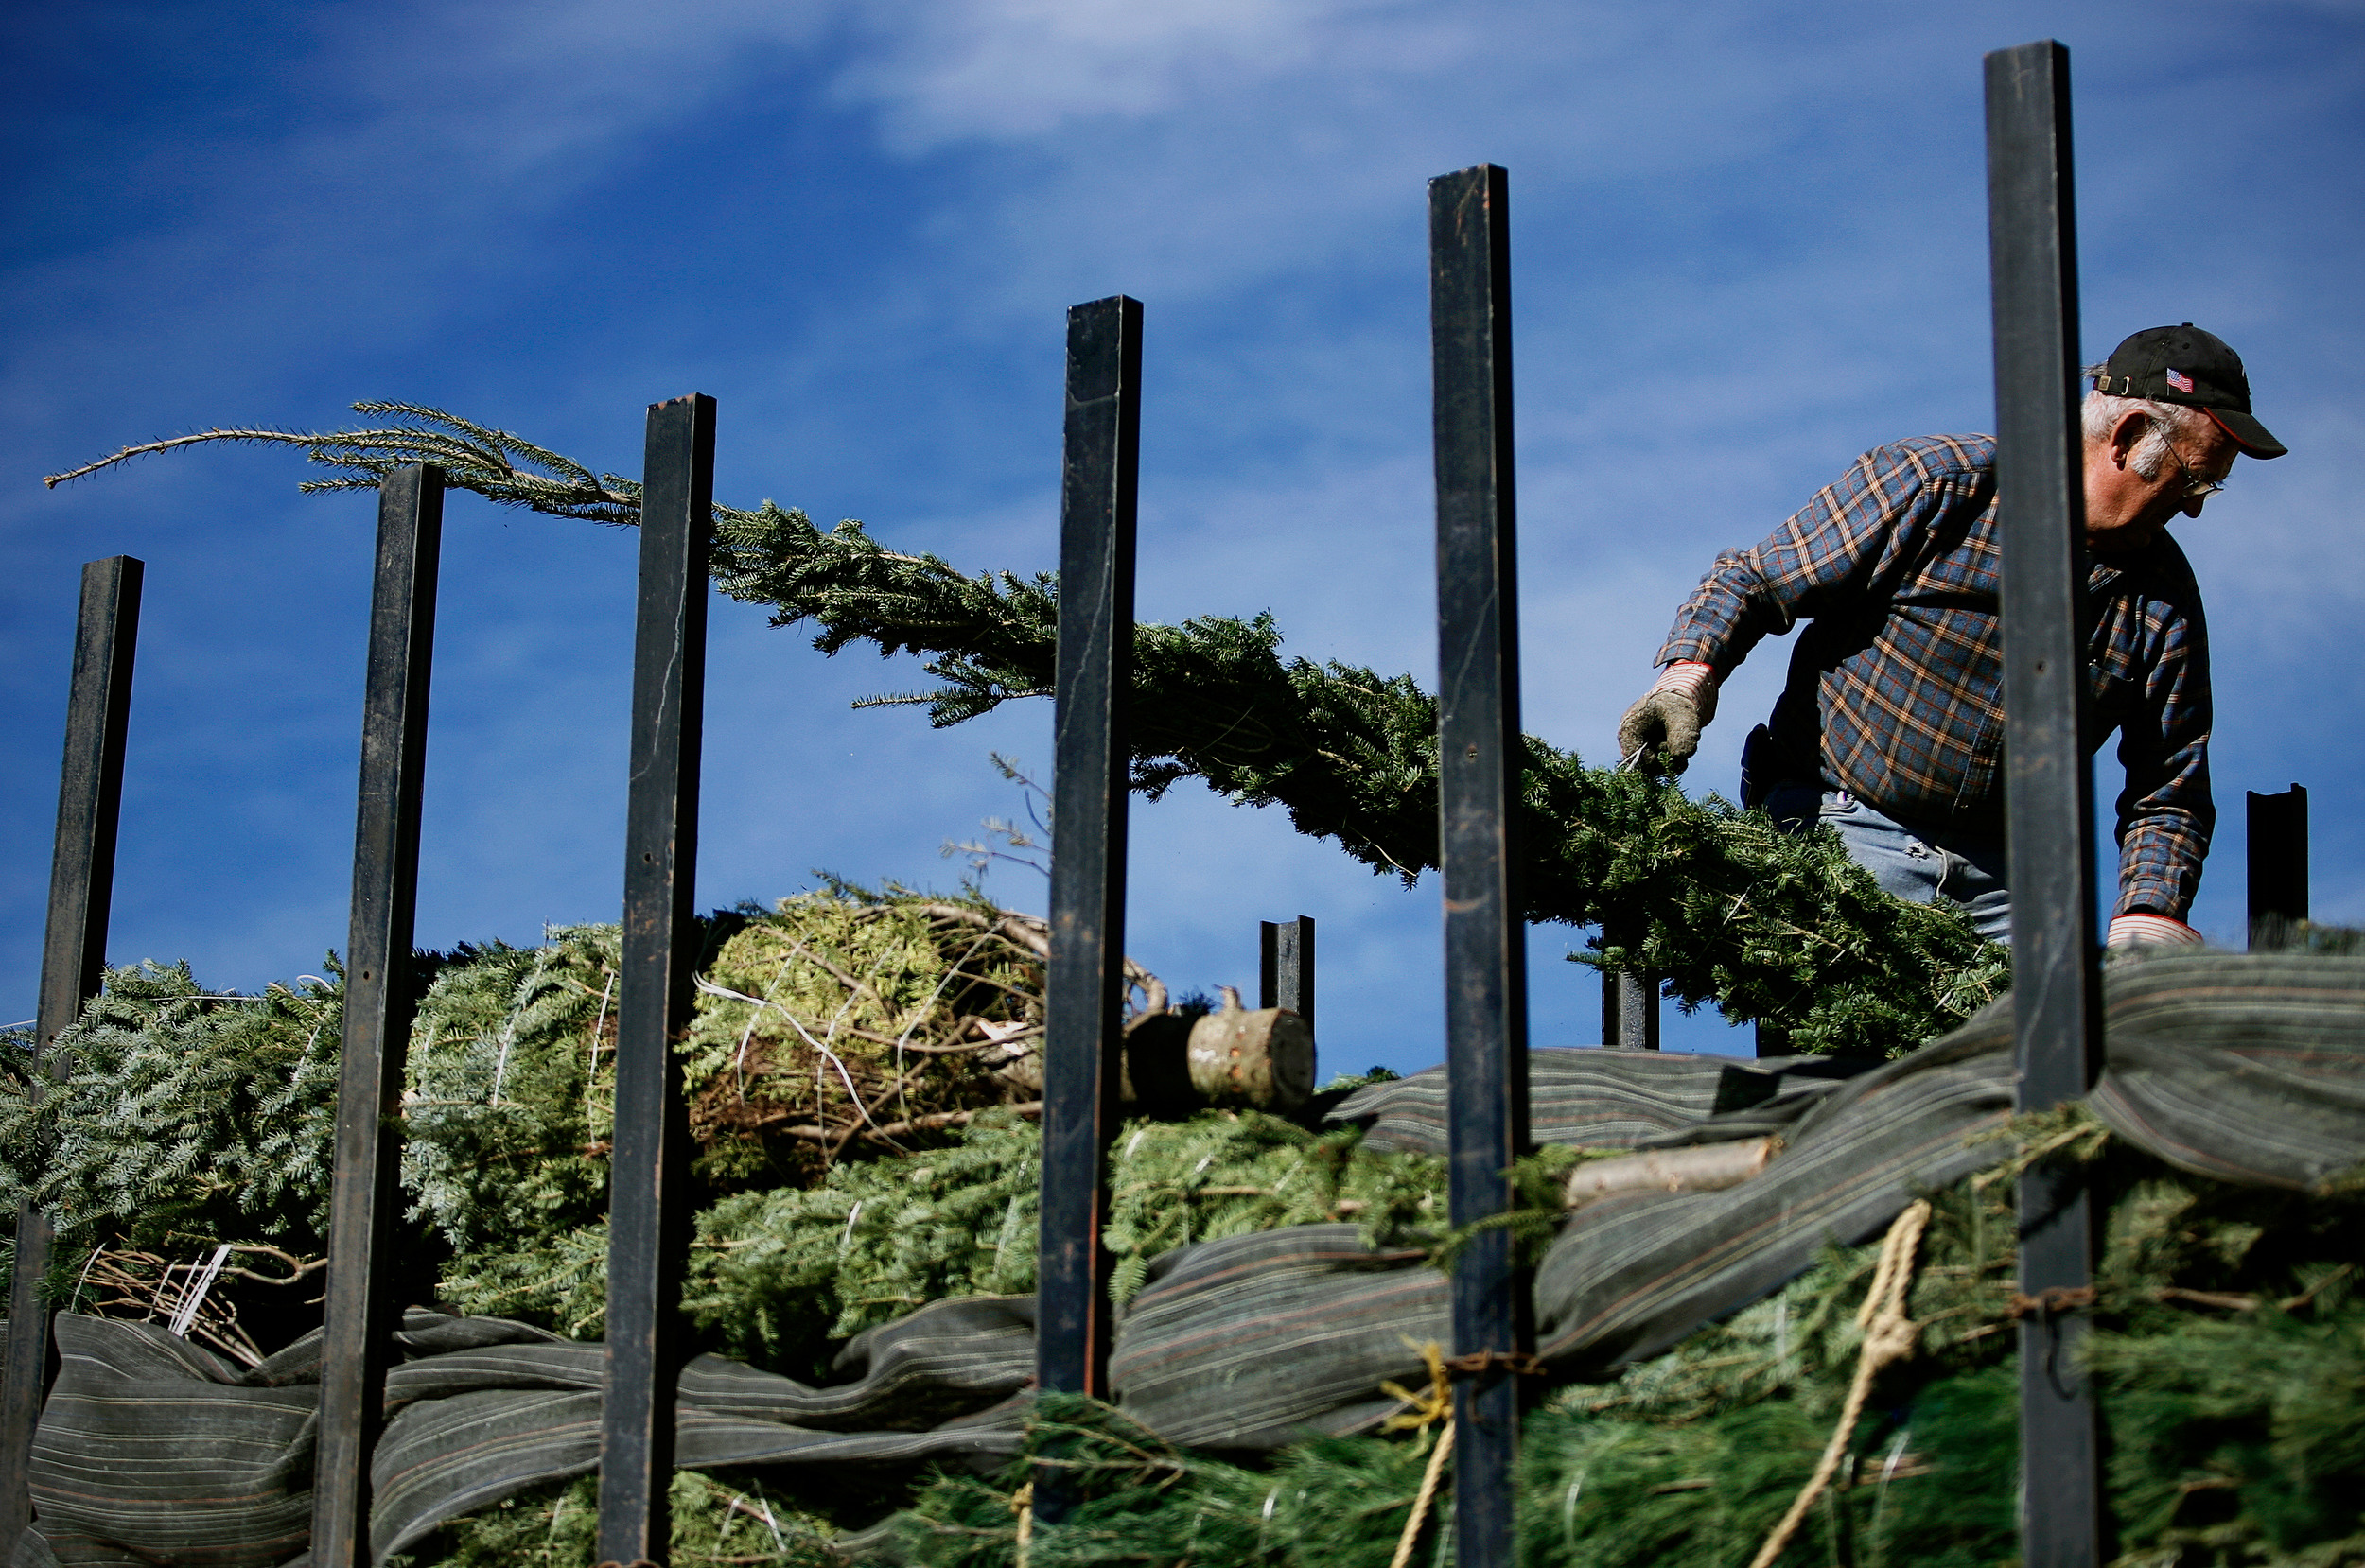 CHRISTMAS TREE FARMER © TODD SPOTH